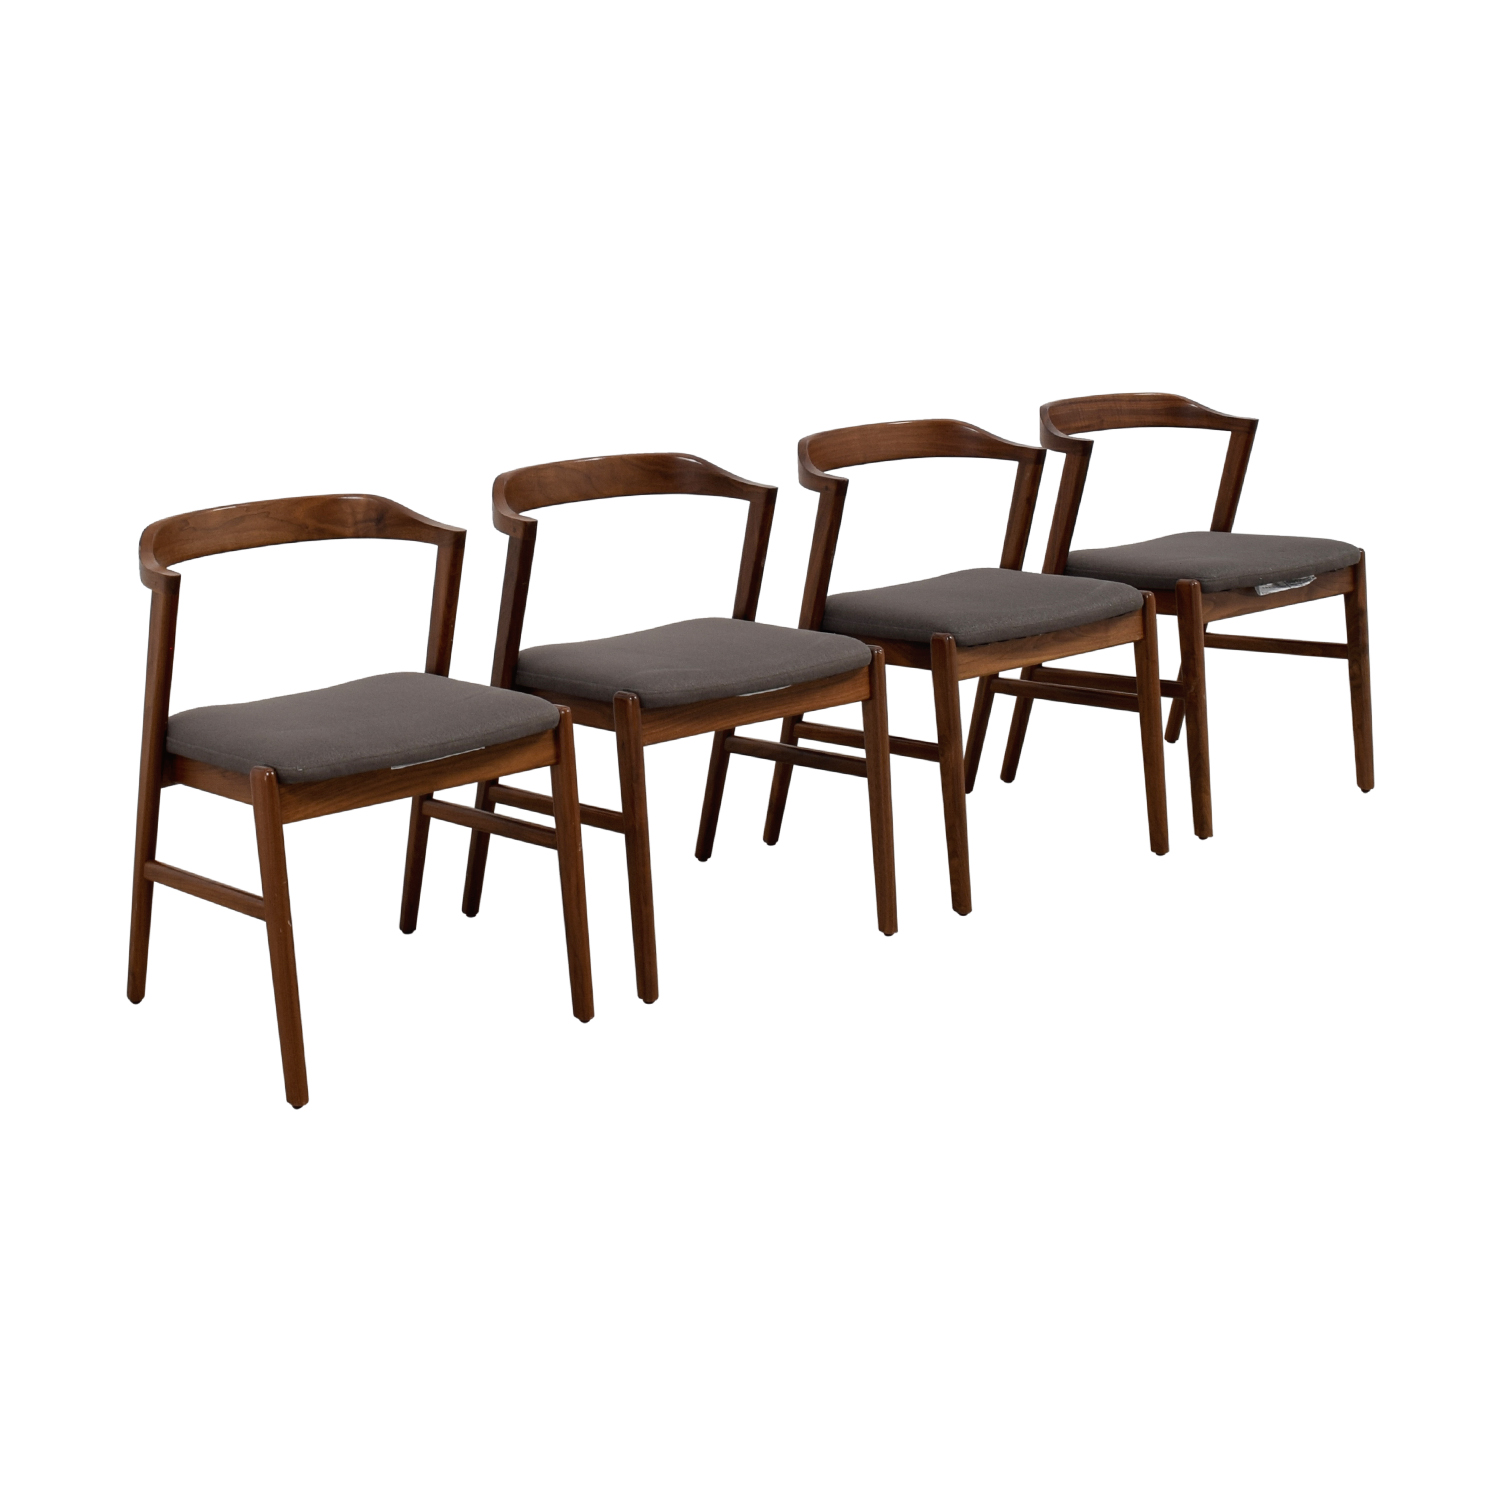 Room & Board Room & Board Jansen Side Chair in Merit Fabric Dining Chairs